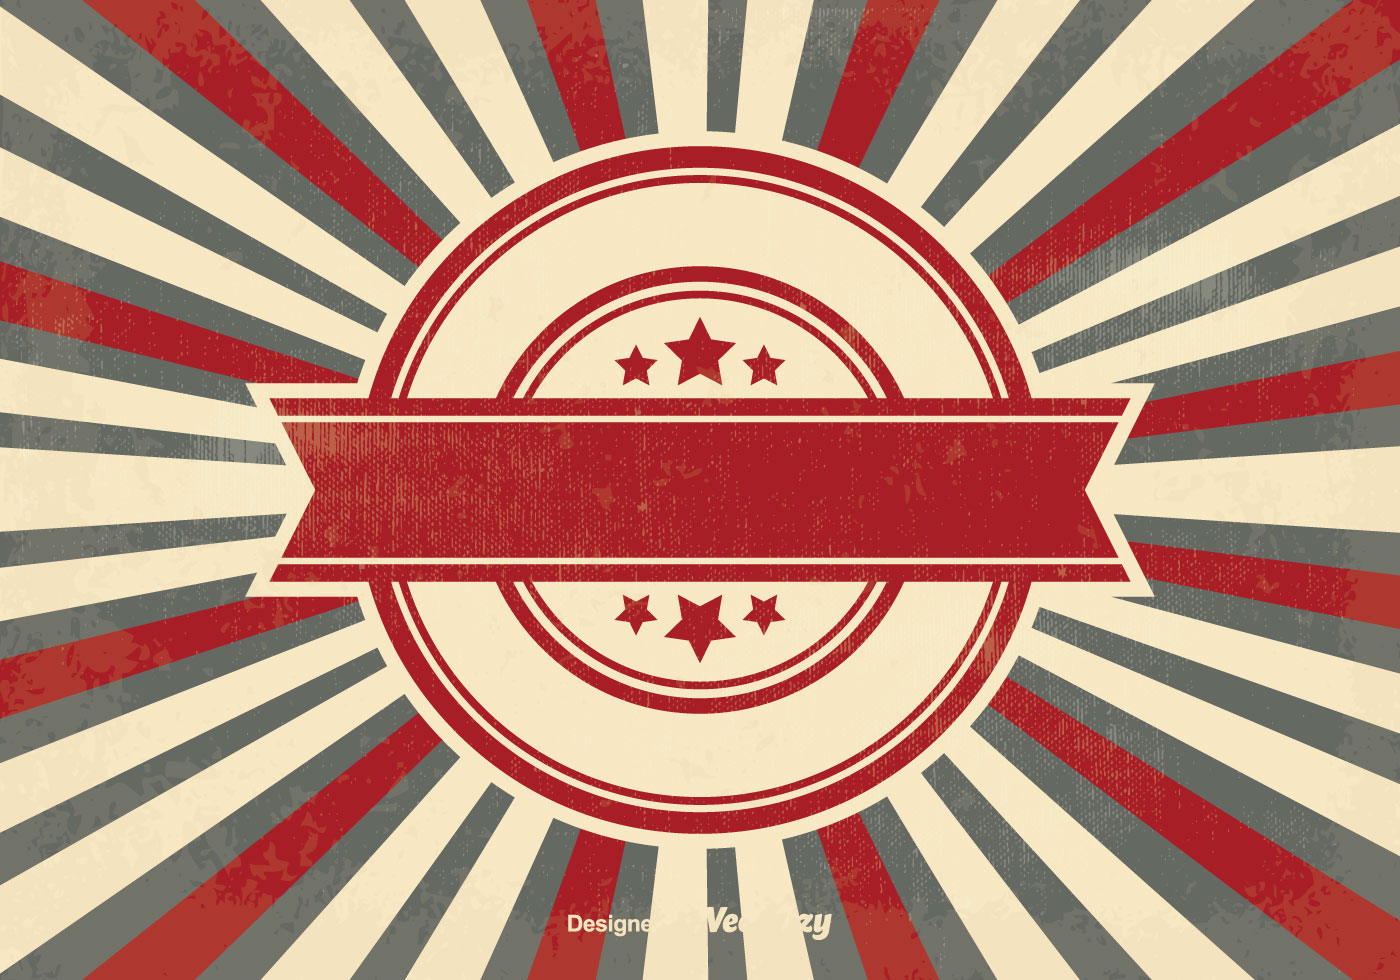 Look Retro Retro Style Sunburst Background Download Free Vector Art